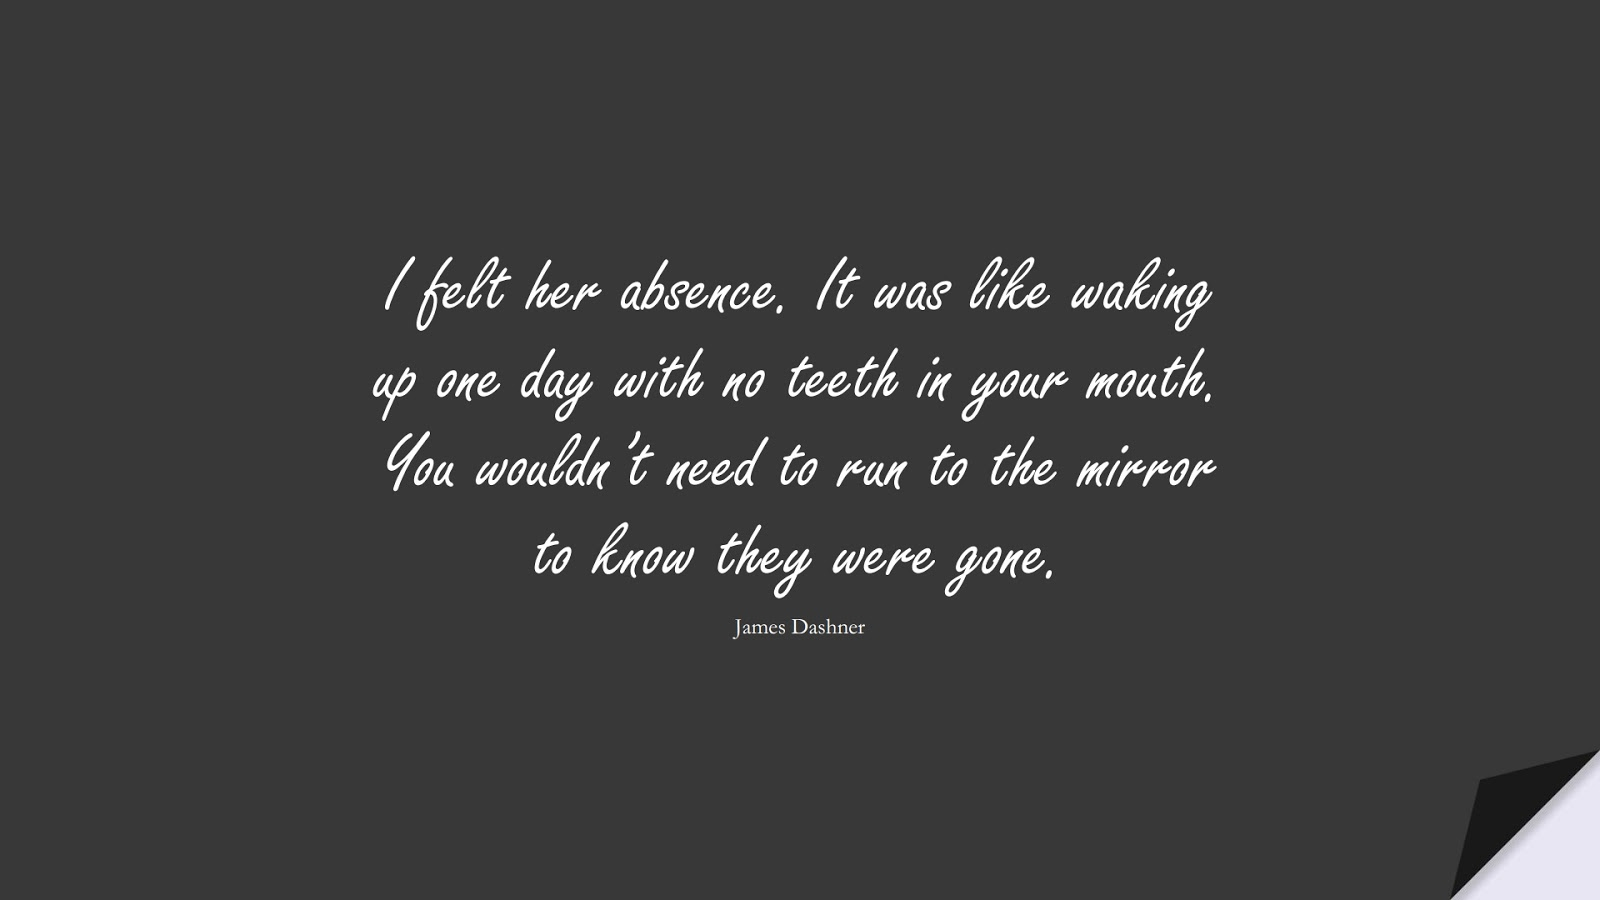 I felt her absence. It was like waking up one day with no teeth in your mouth. You wouldn't need to run to the mirror to know they were gone. (James Dashner);  #SadLoveQuotes